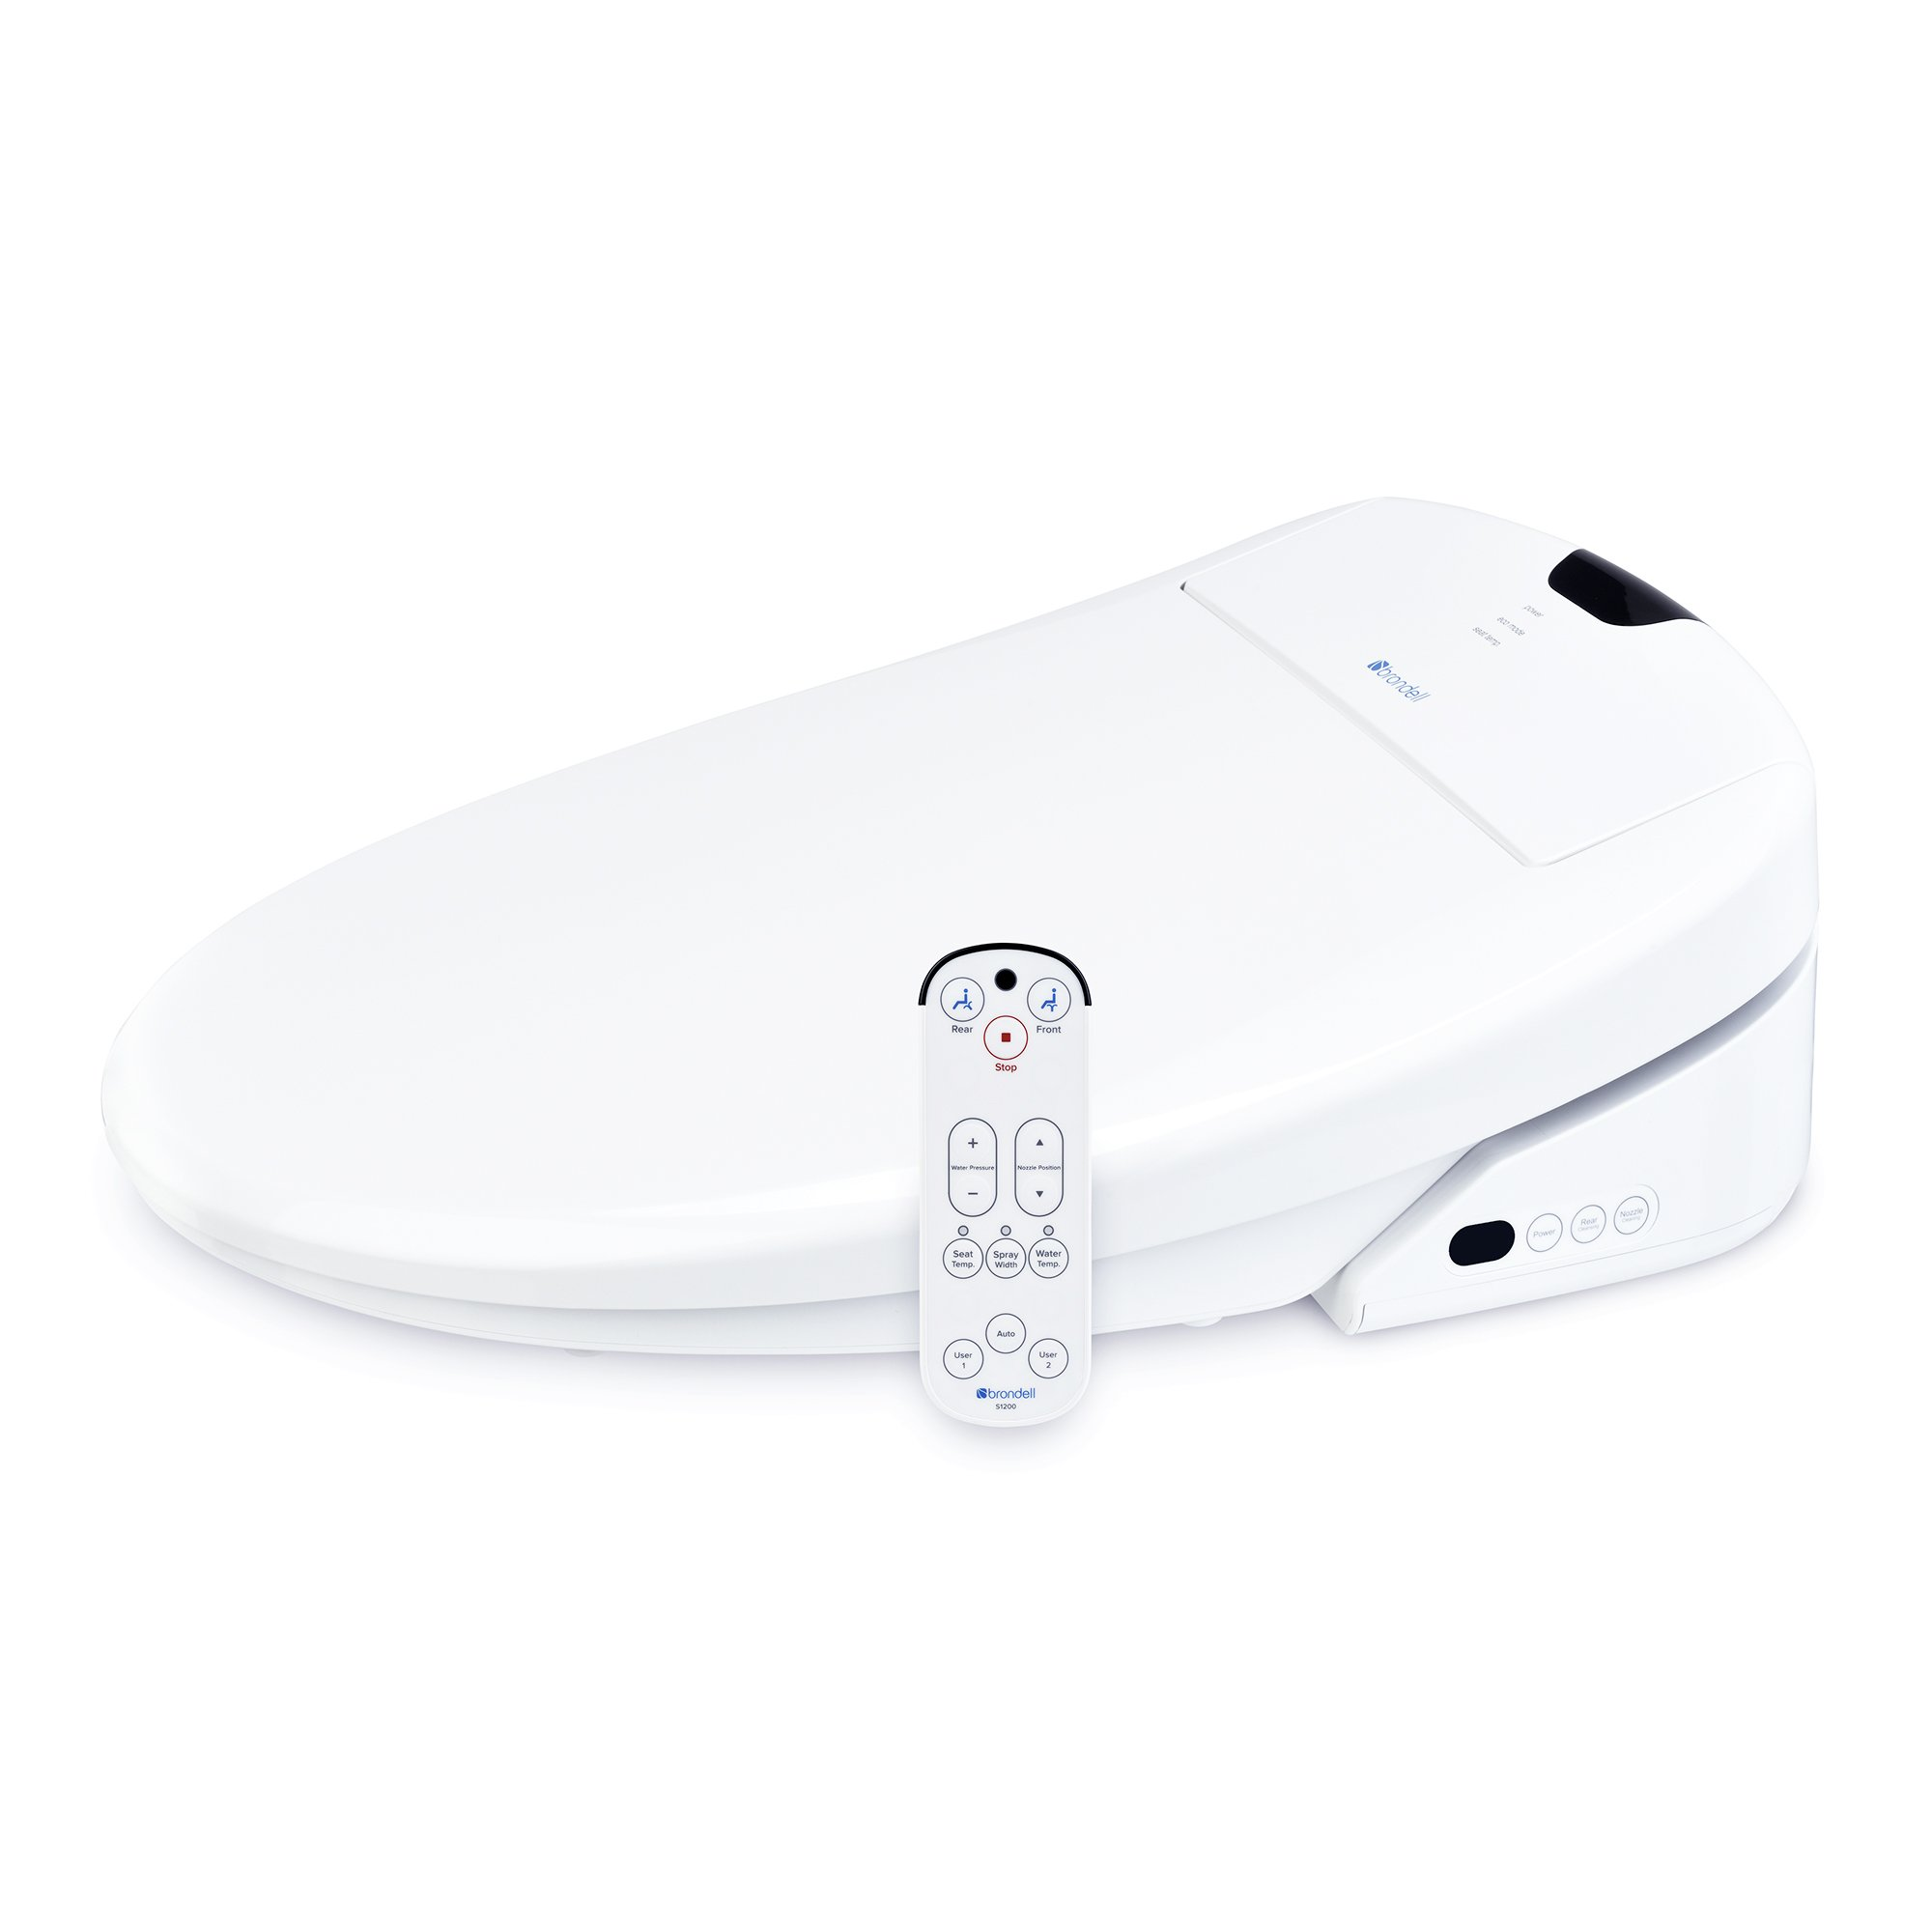 Brondell Swash S1200-RW Luxury Bidet Toilet Seat in Round White with Dual Stainless-Steel Nozzles | Endless Warm Water | Programmable User Settings | Self-Cleaning Nozzles | Nightlight